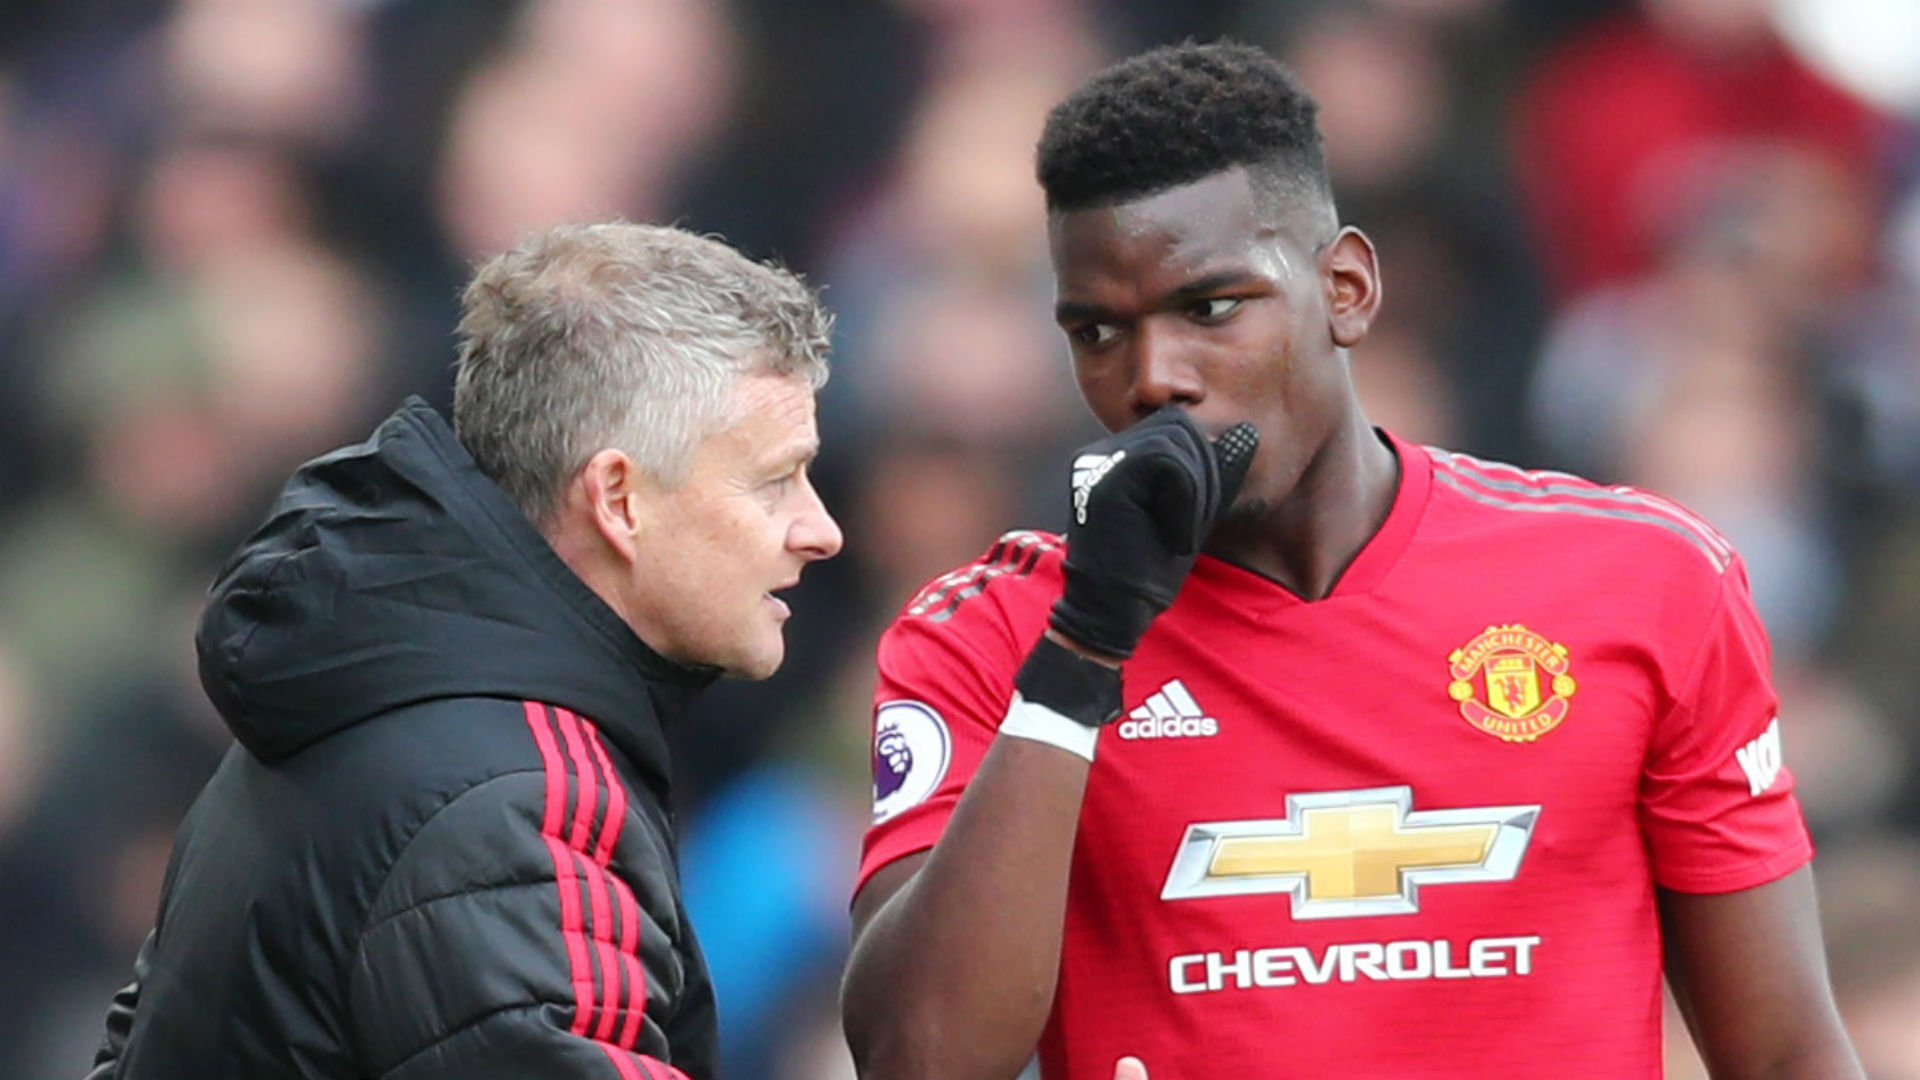 RVP tells Pogba and Solskjaer to clarify Man Utd plans with joint interview